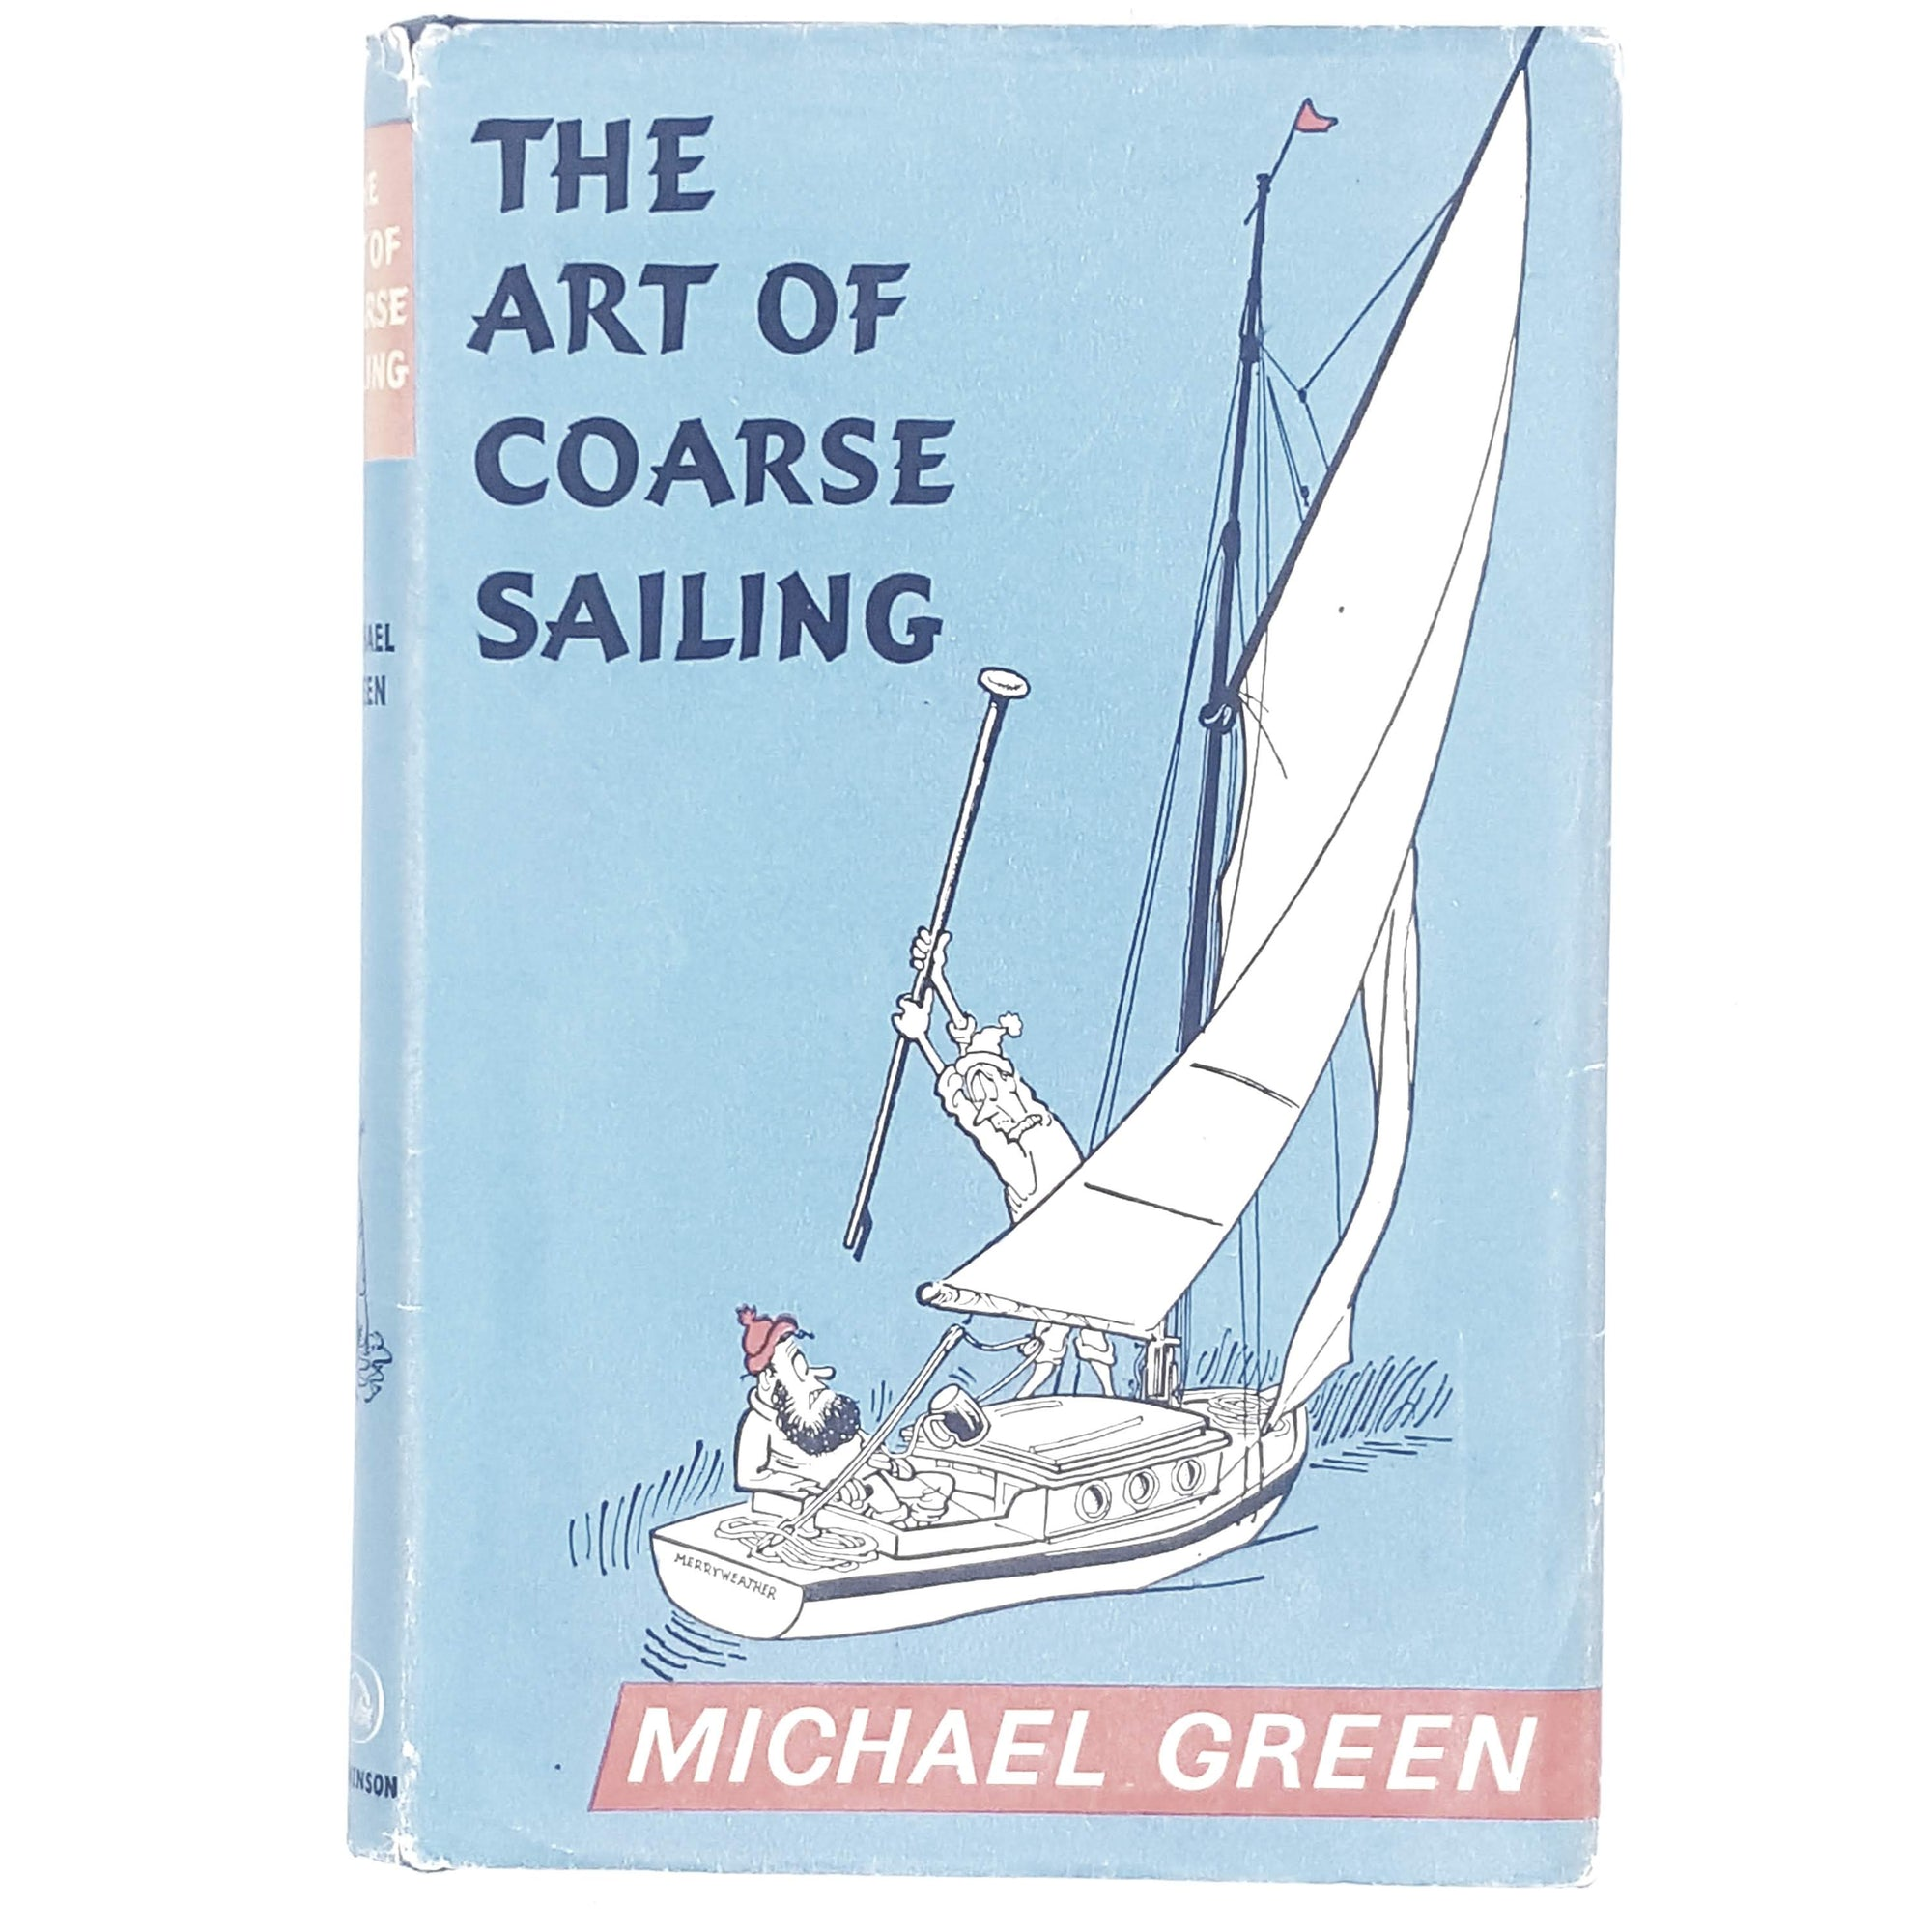 Illustrated The Art of Coarse Sailing by Michael Green 1963